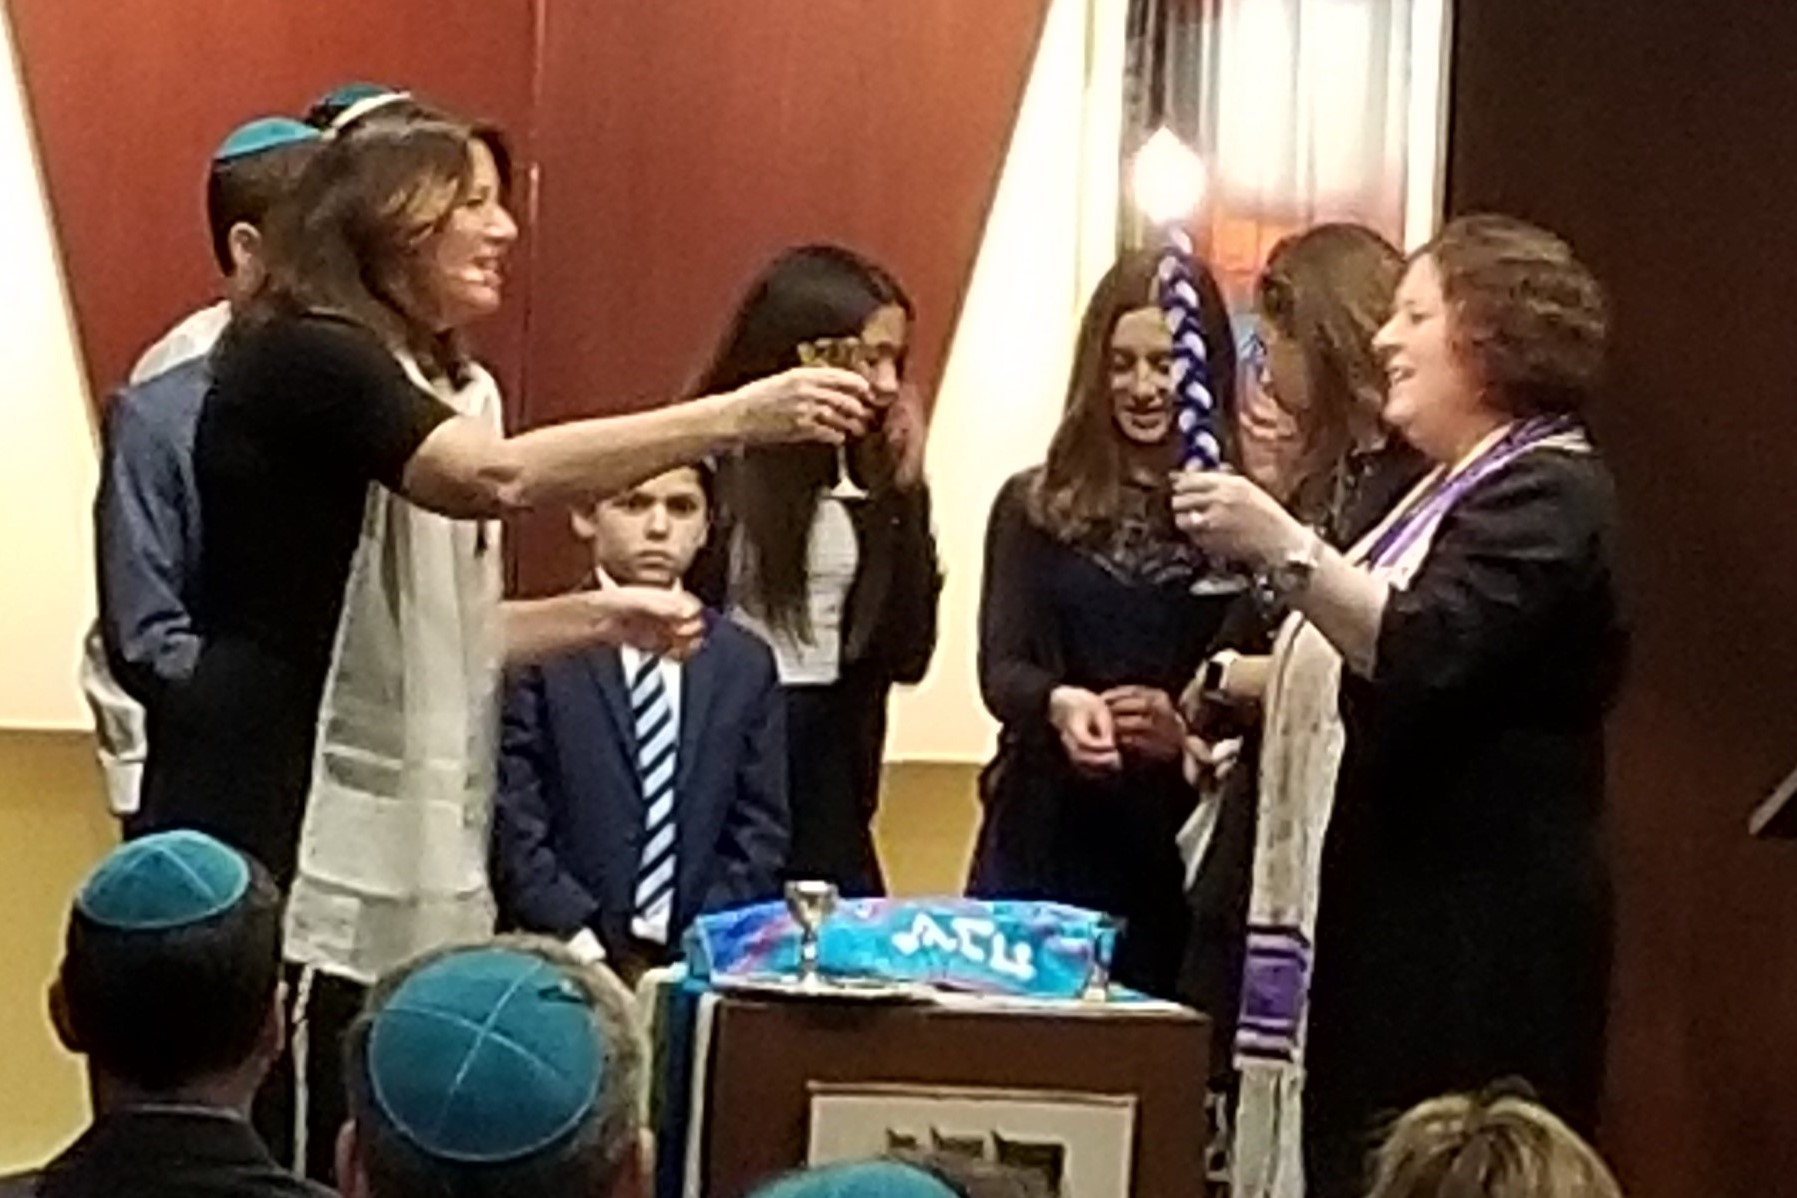 "<span class=""slider_description""><p>At Congregation B'nai Torah, being Jewish fits easily into your busy life.</p>